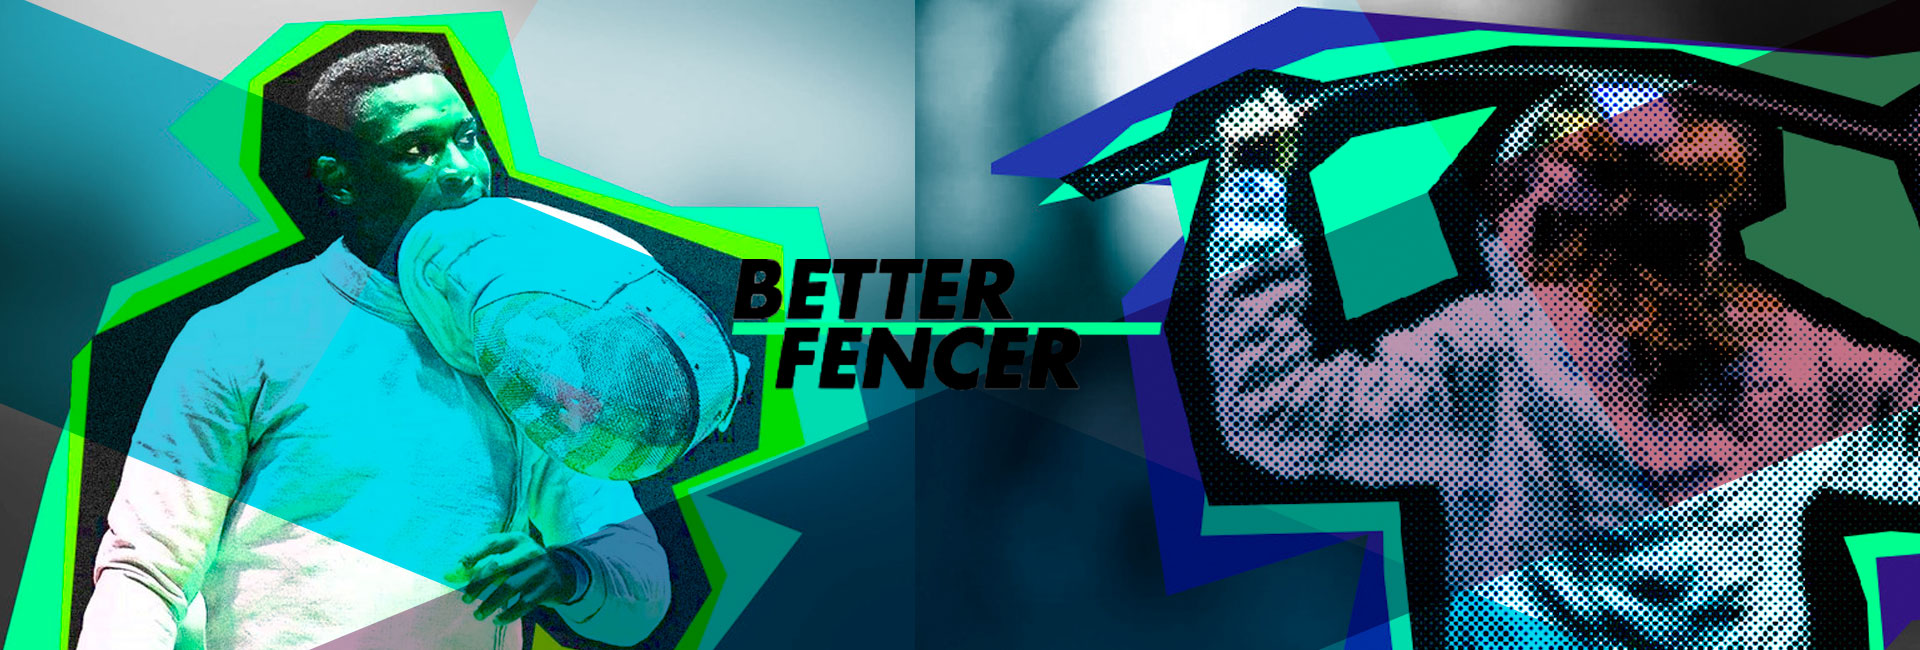 Entrevista de esgrima a Better Fencer